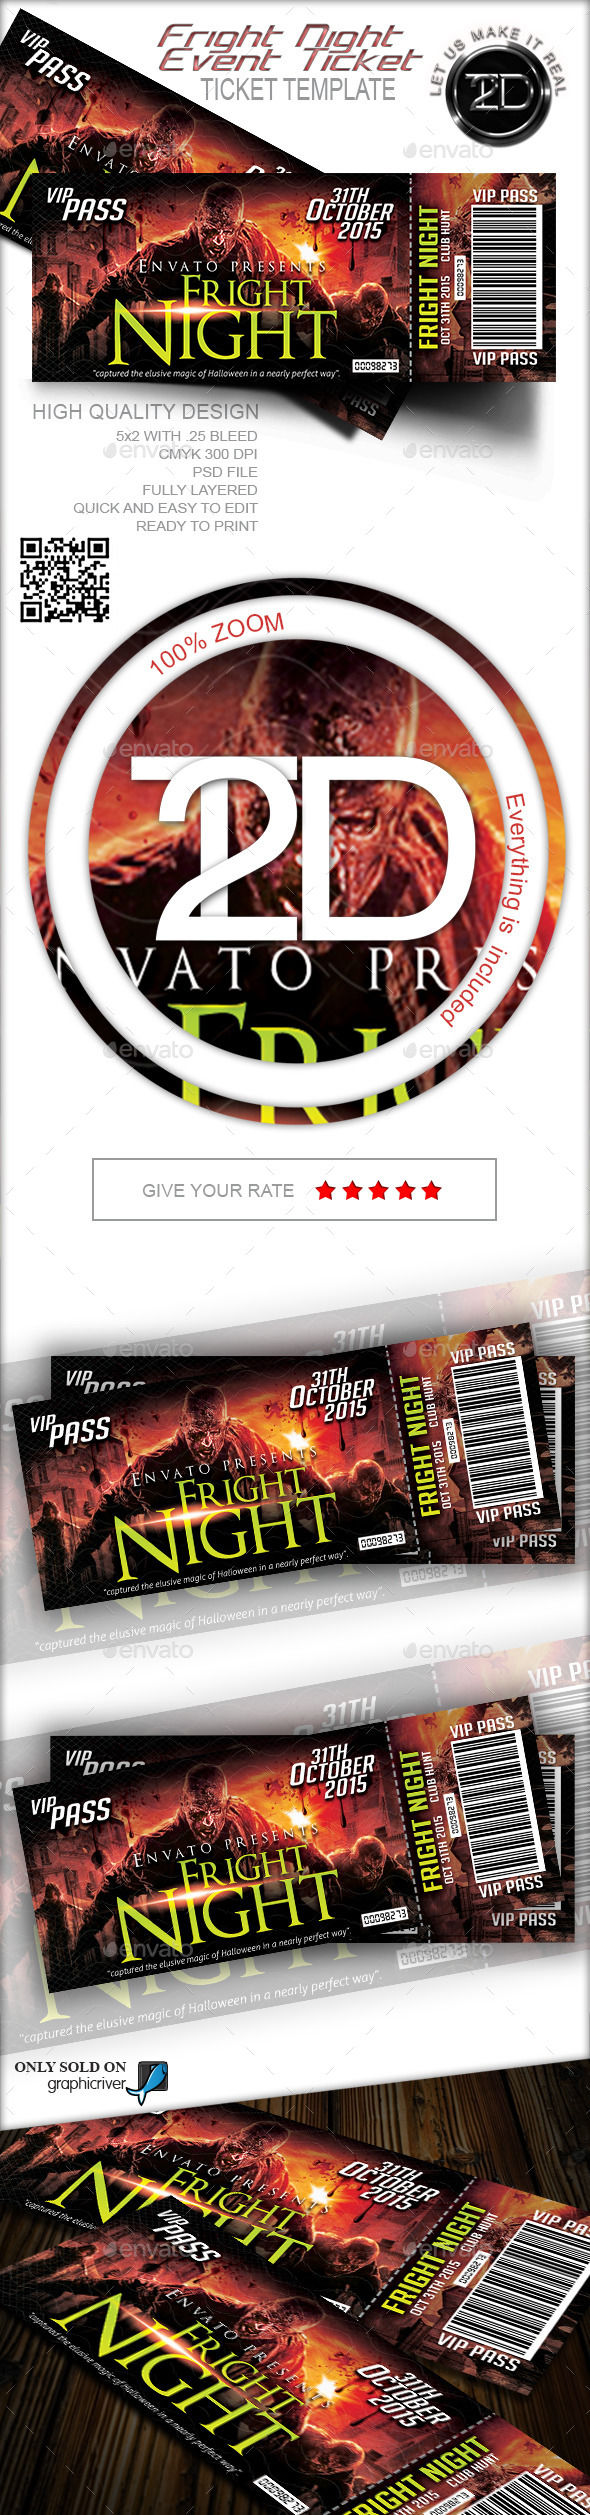 Fright Night Print Ready Event Ticket by Take2Design (Halloween party flyer)